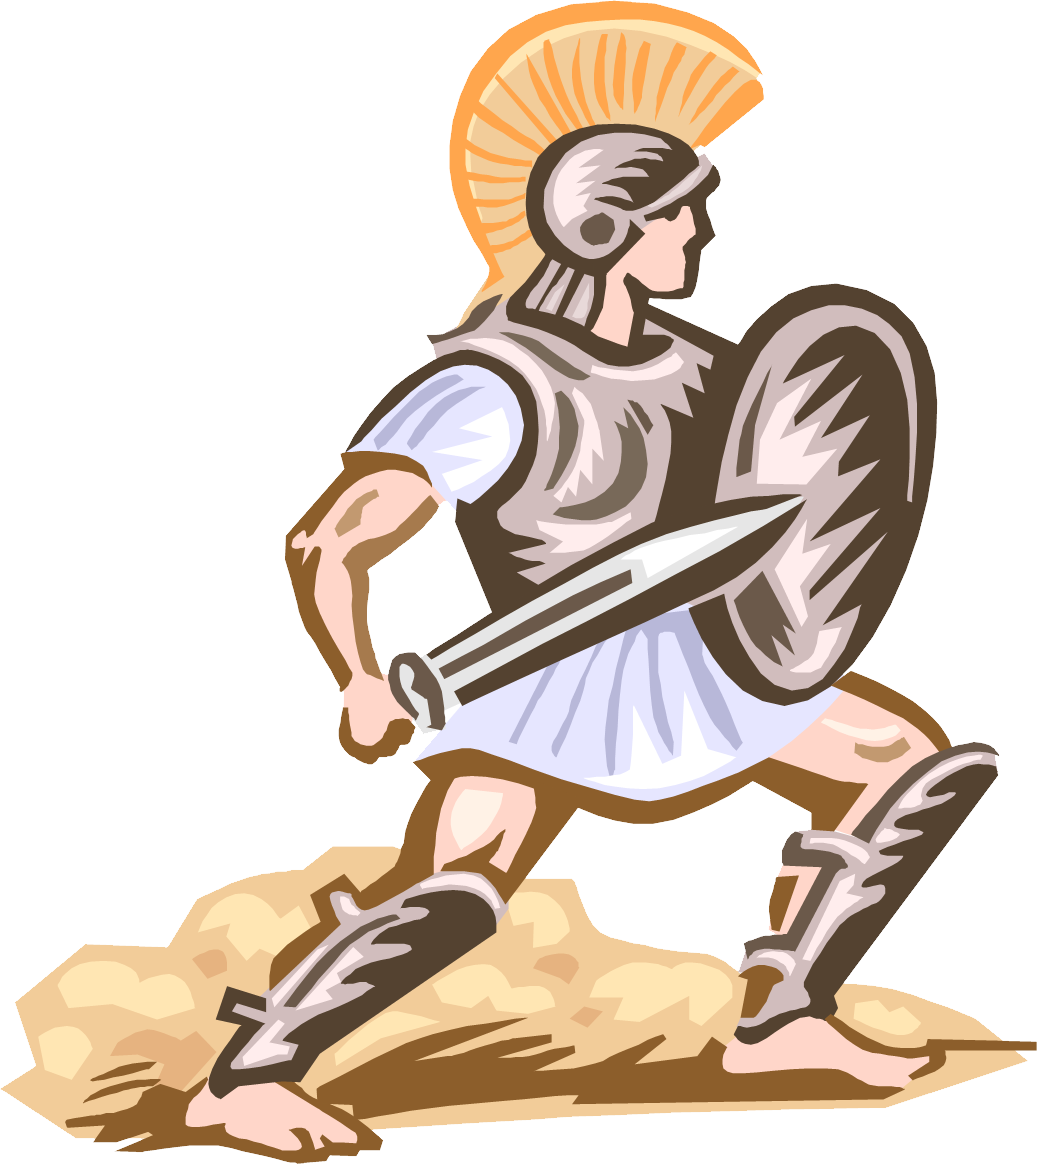 Armor of god armour. Warrior clipart old soldier